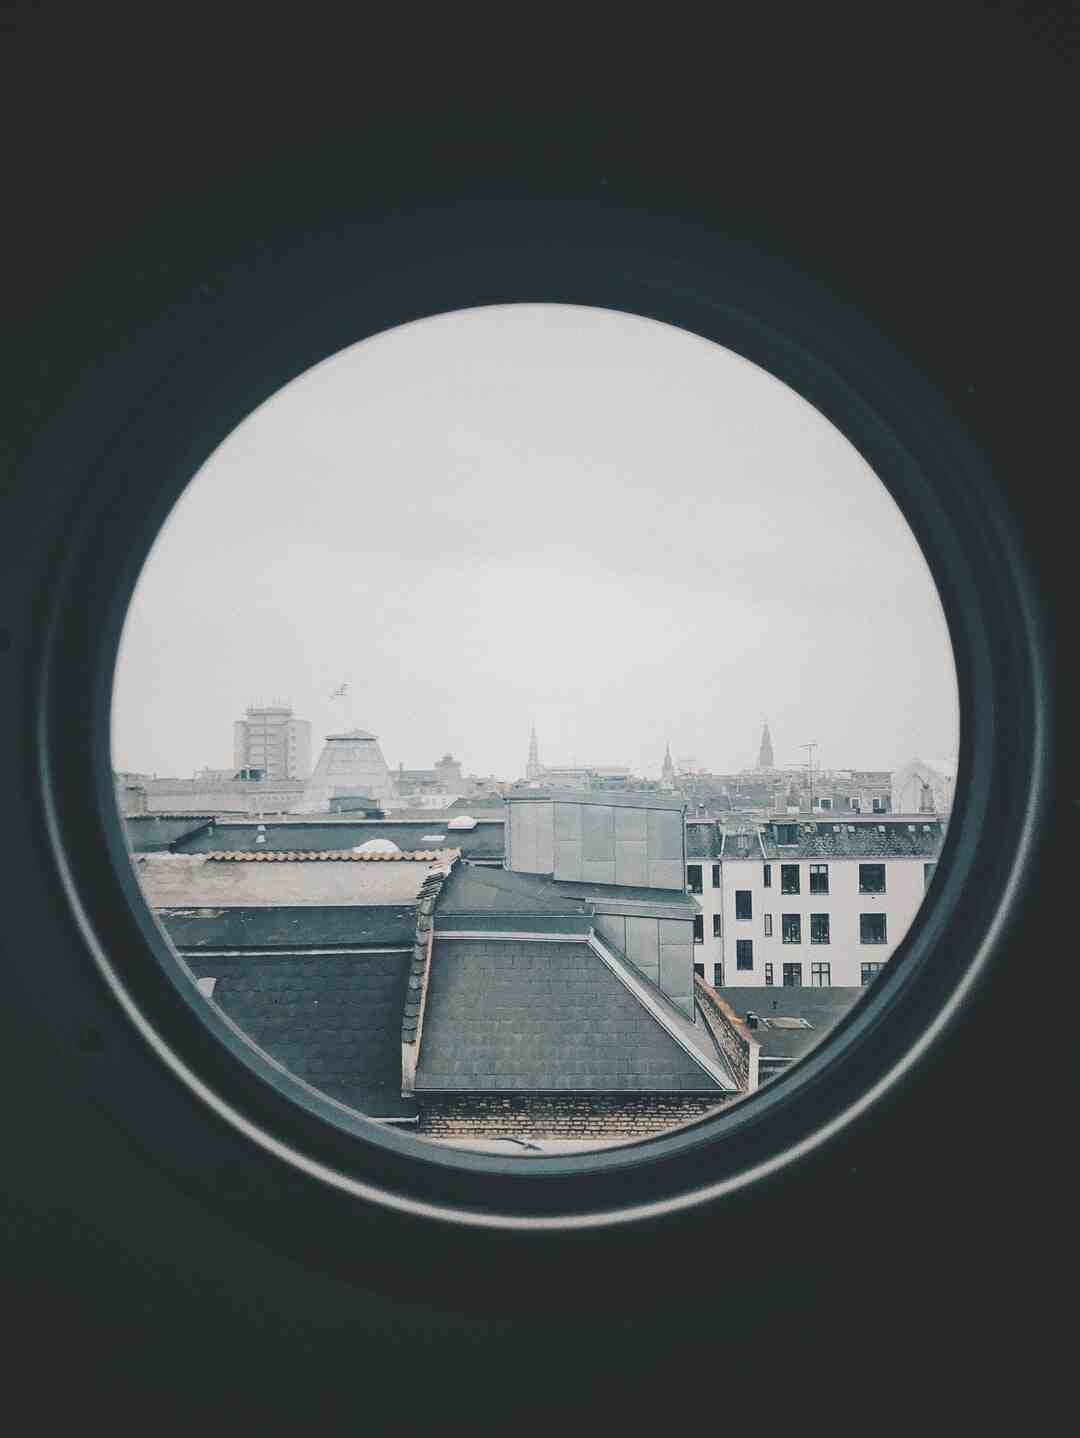 How do you measure the size of a window?